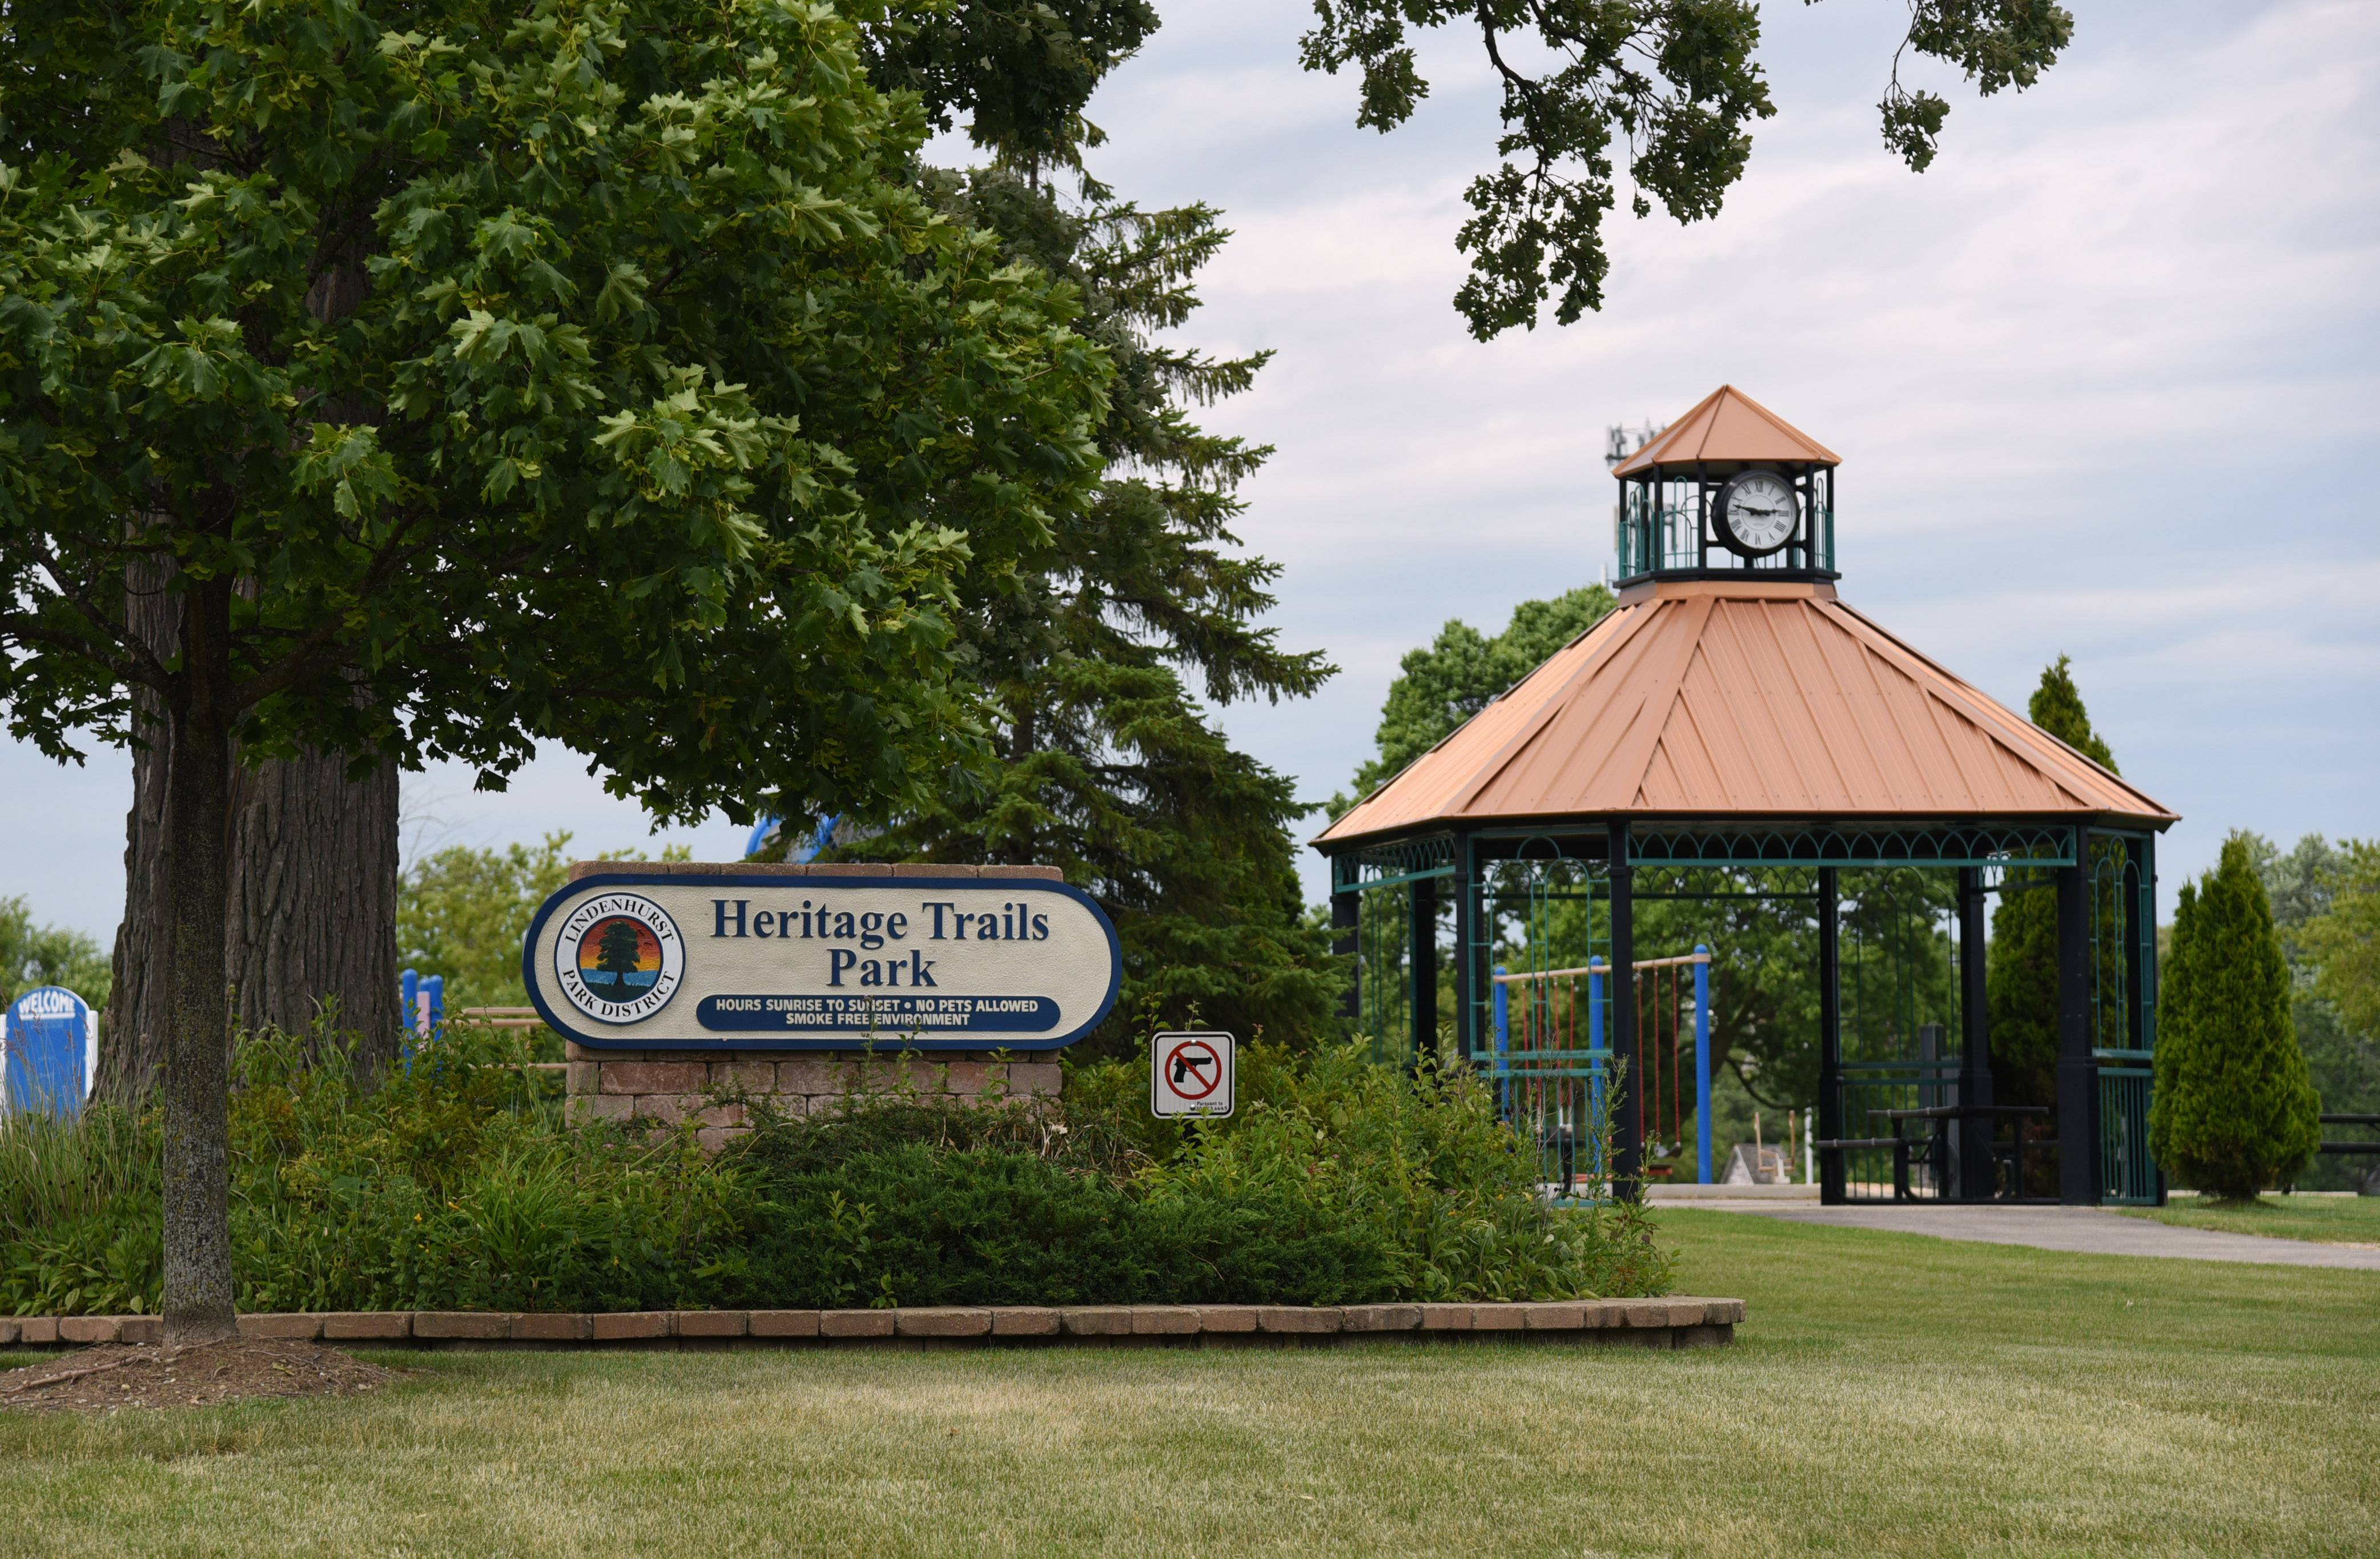 The neighborhood offers many recreational opportunities, such as Heritage Trails Park.